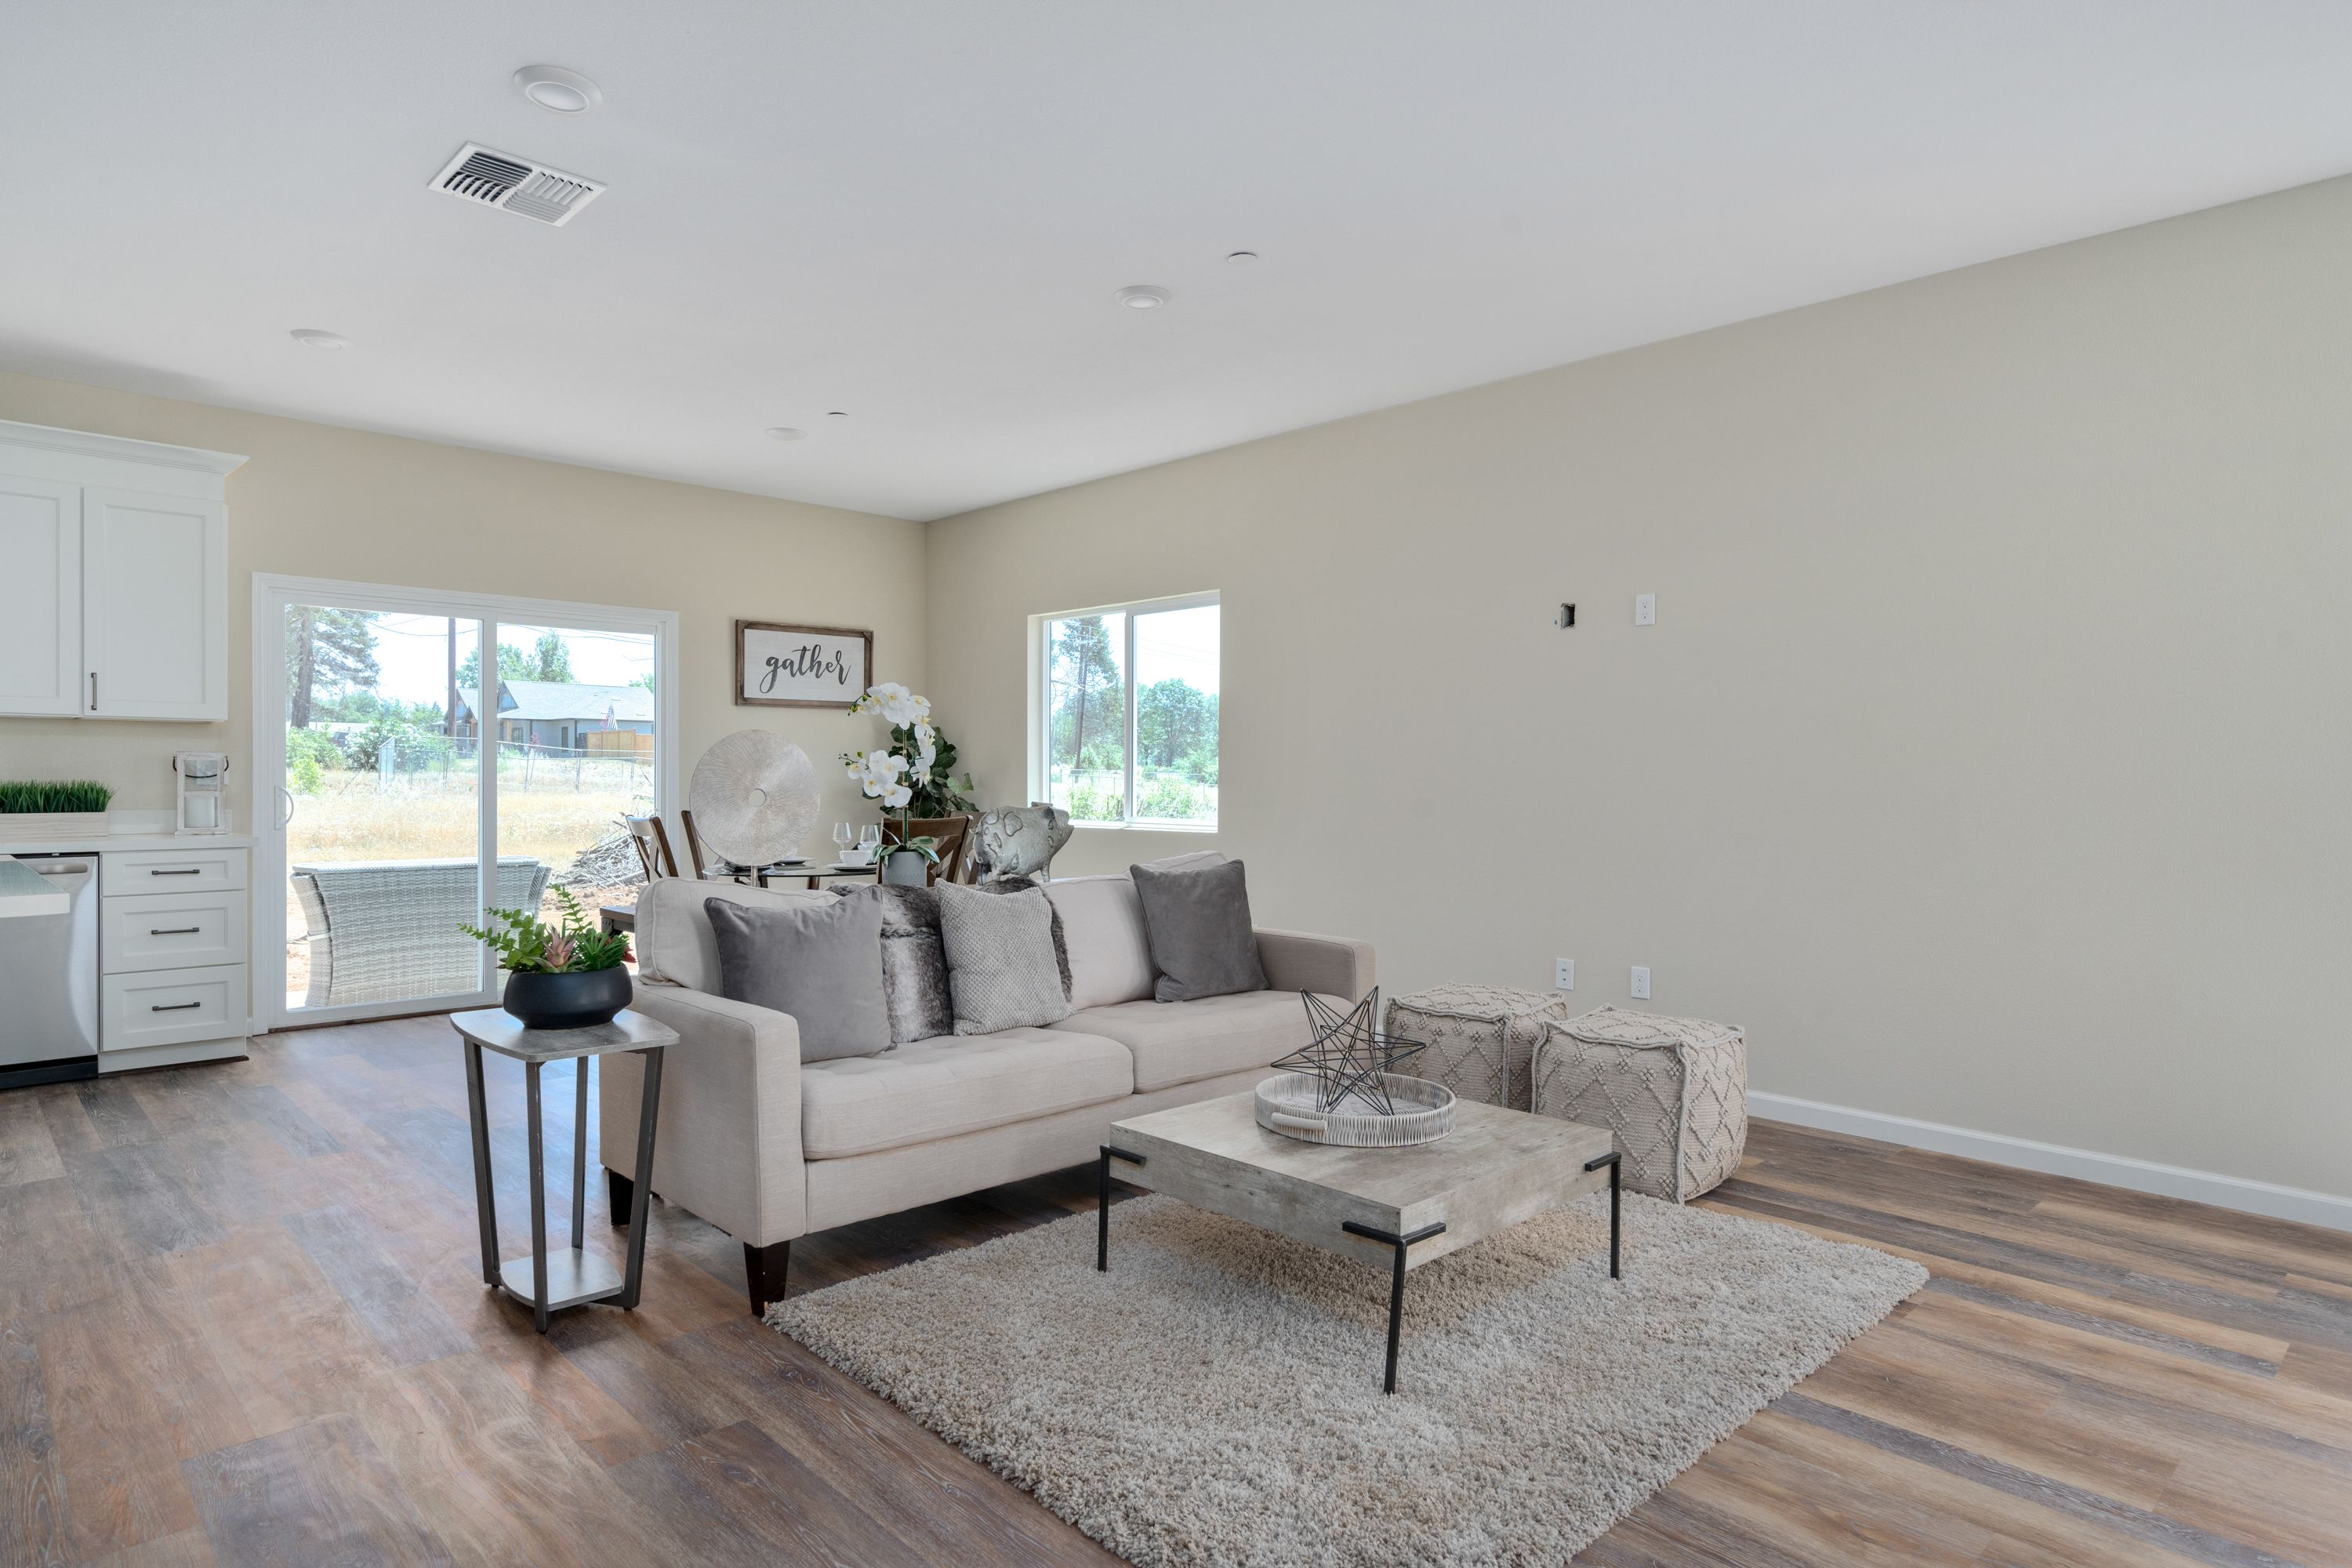 Living Area featured in the 5870 Jaguar Ct By Silvermark Luxury Homes in Chico, CA